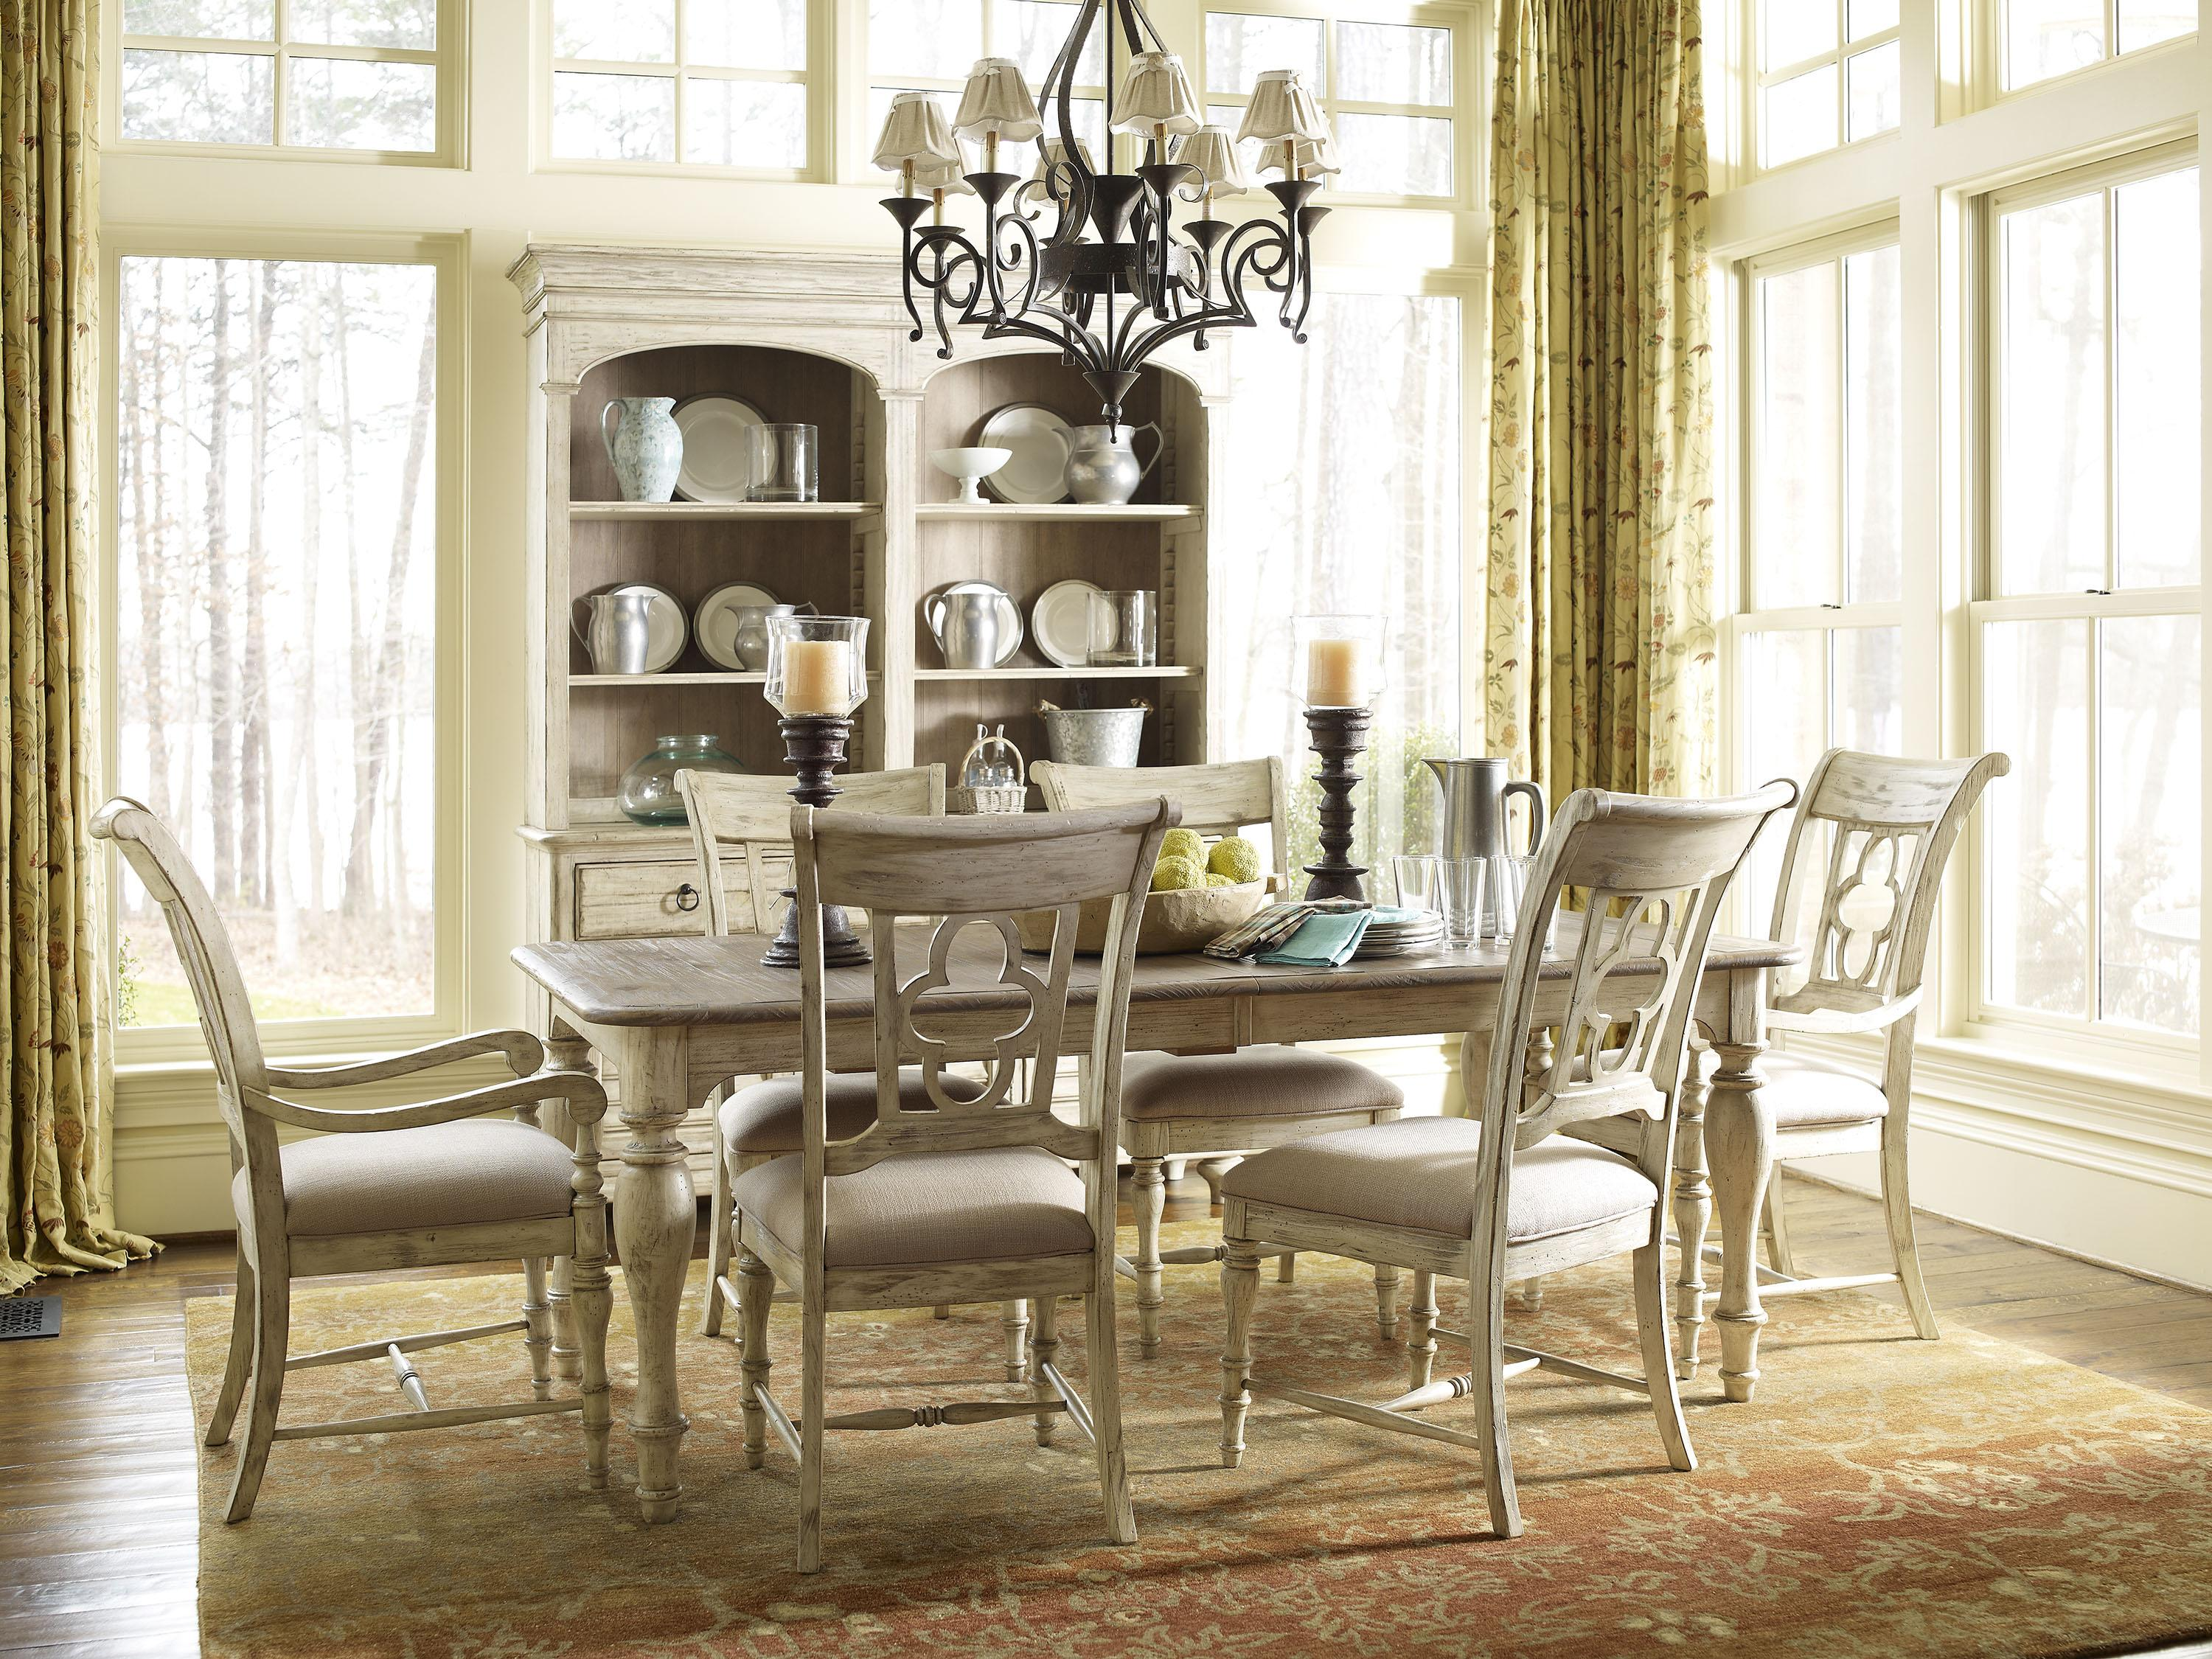 Kincaid furniture weatherford 7 piece dining set with for A piece of furniture